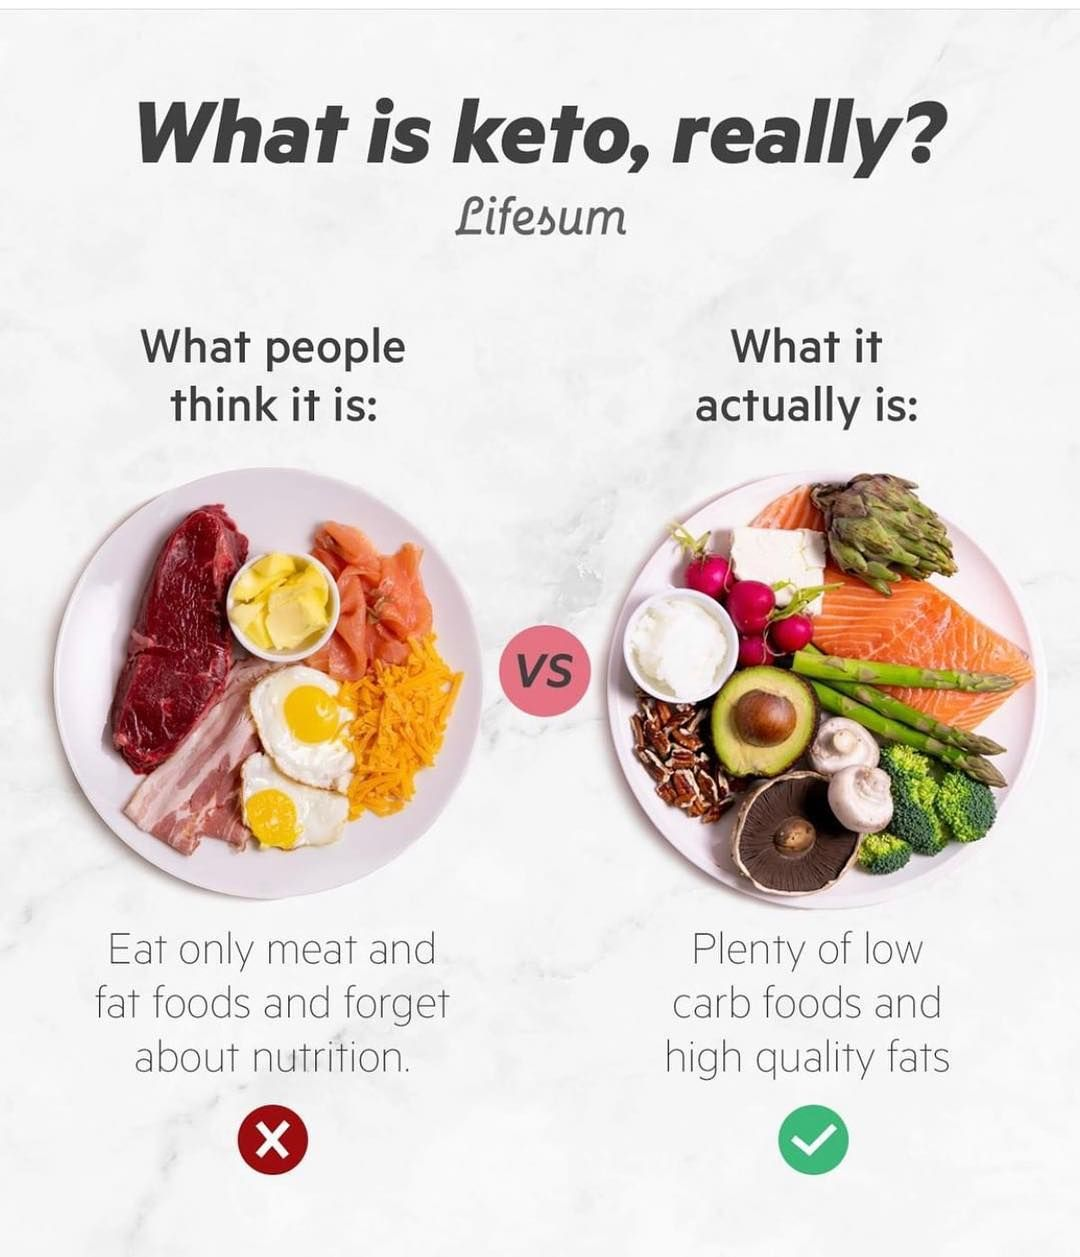 how unhealthy is a low carb diet?